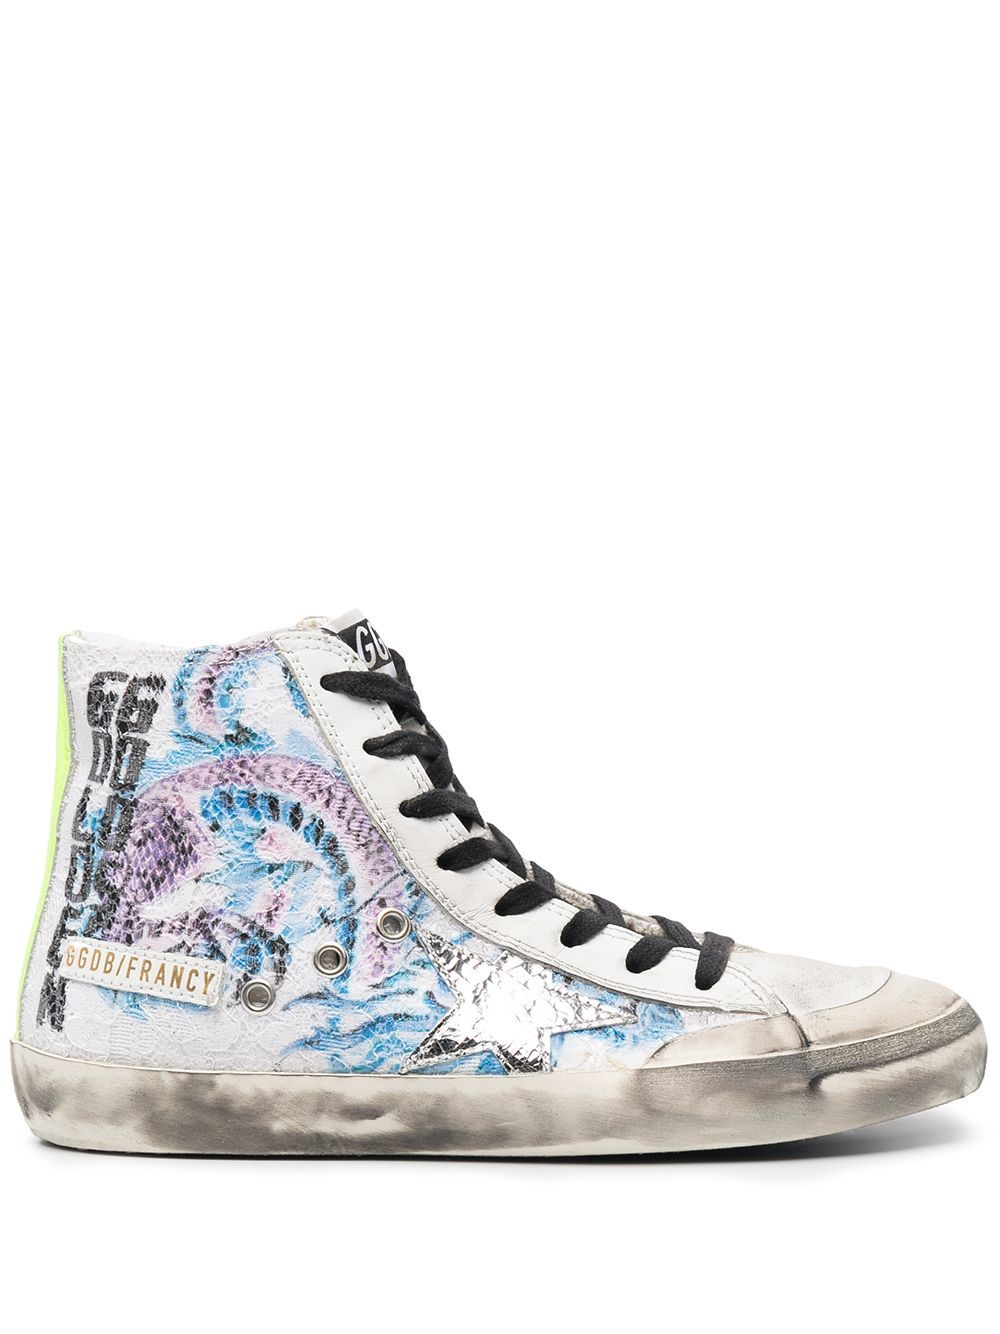 Golden Goose GOLDEN GOOSE WOMEN'S WHITE LEATHER HI TOP SNEAKERS